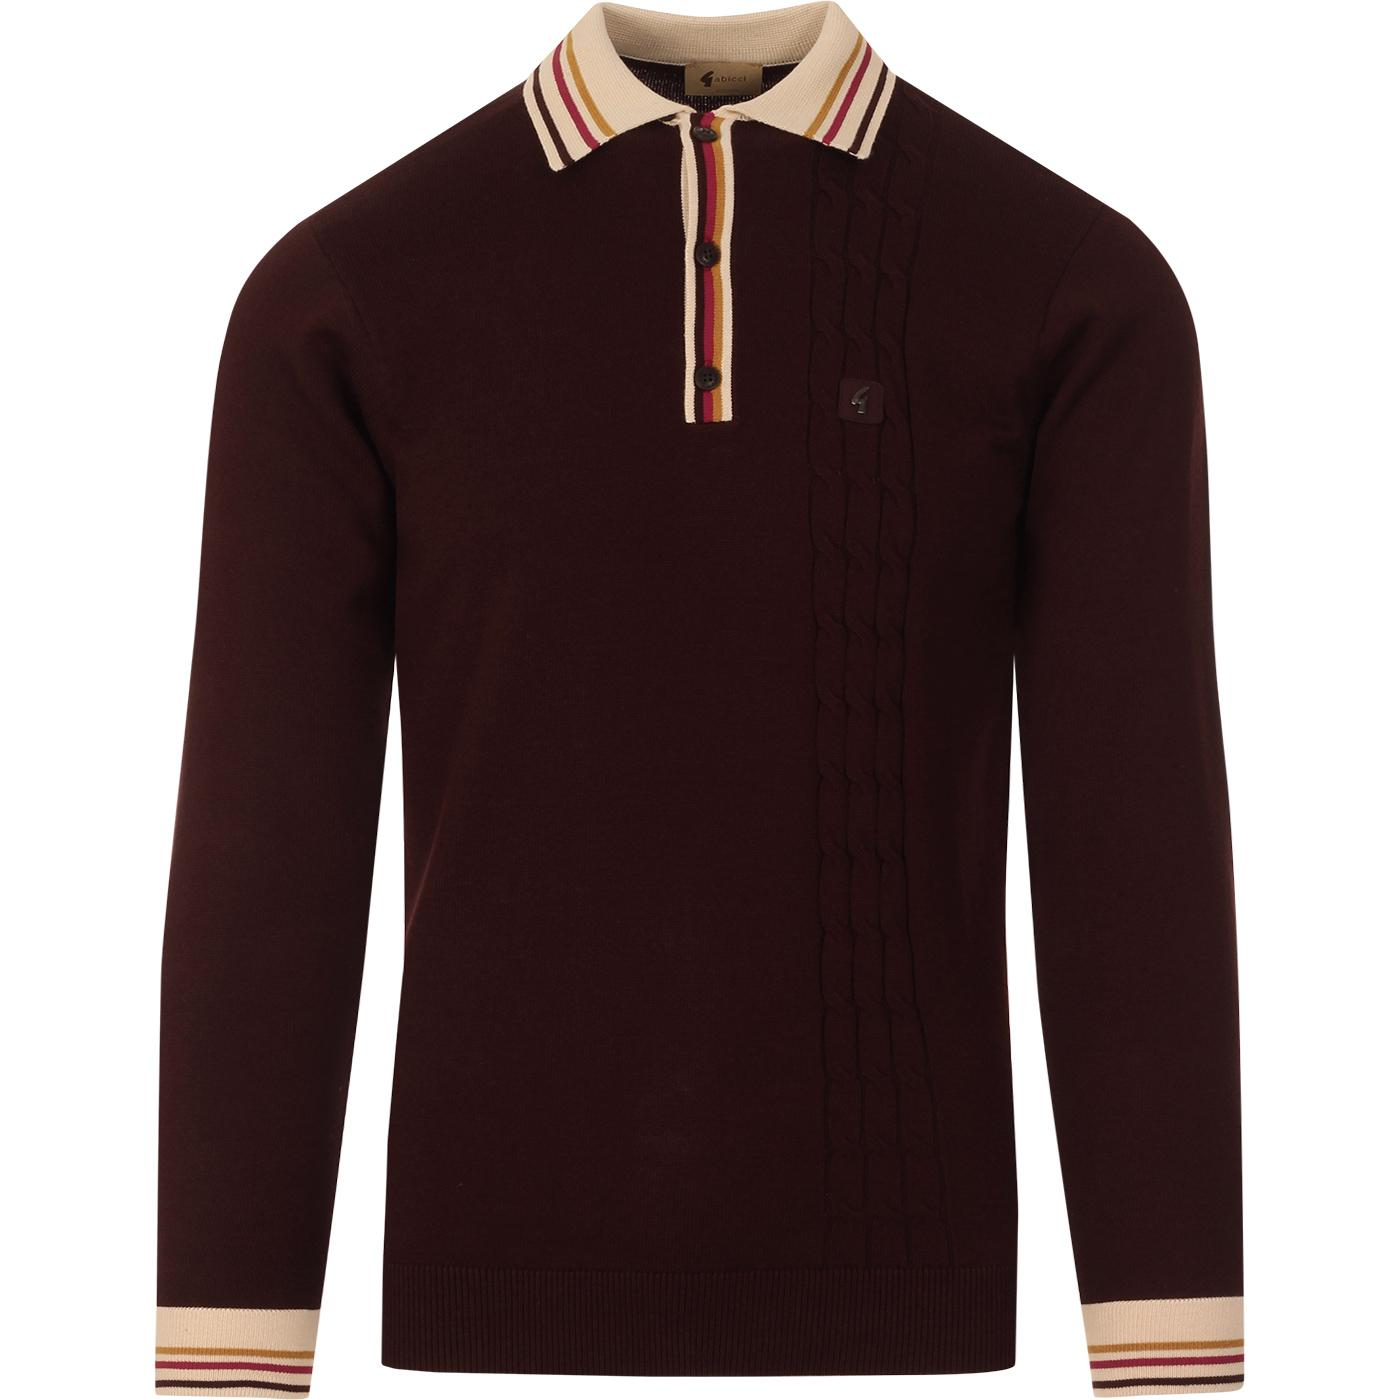 Turney GABICCI VINTAGE Tipped Cable Knit Mod Polo